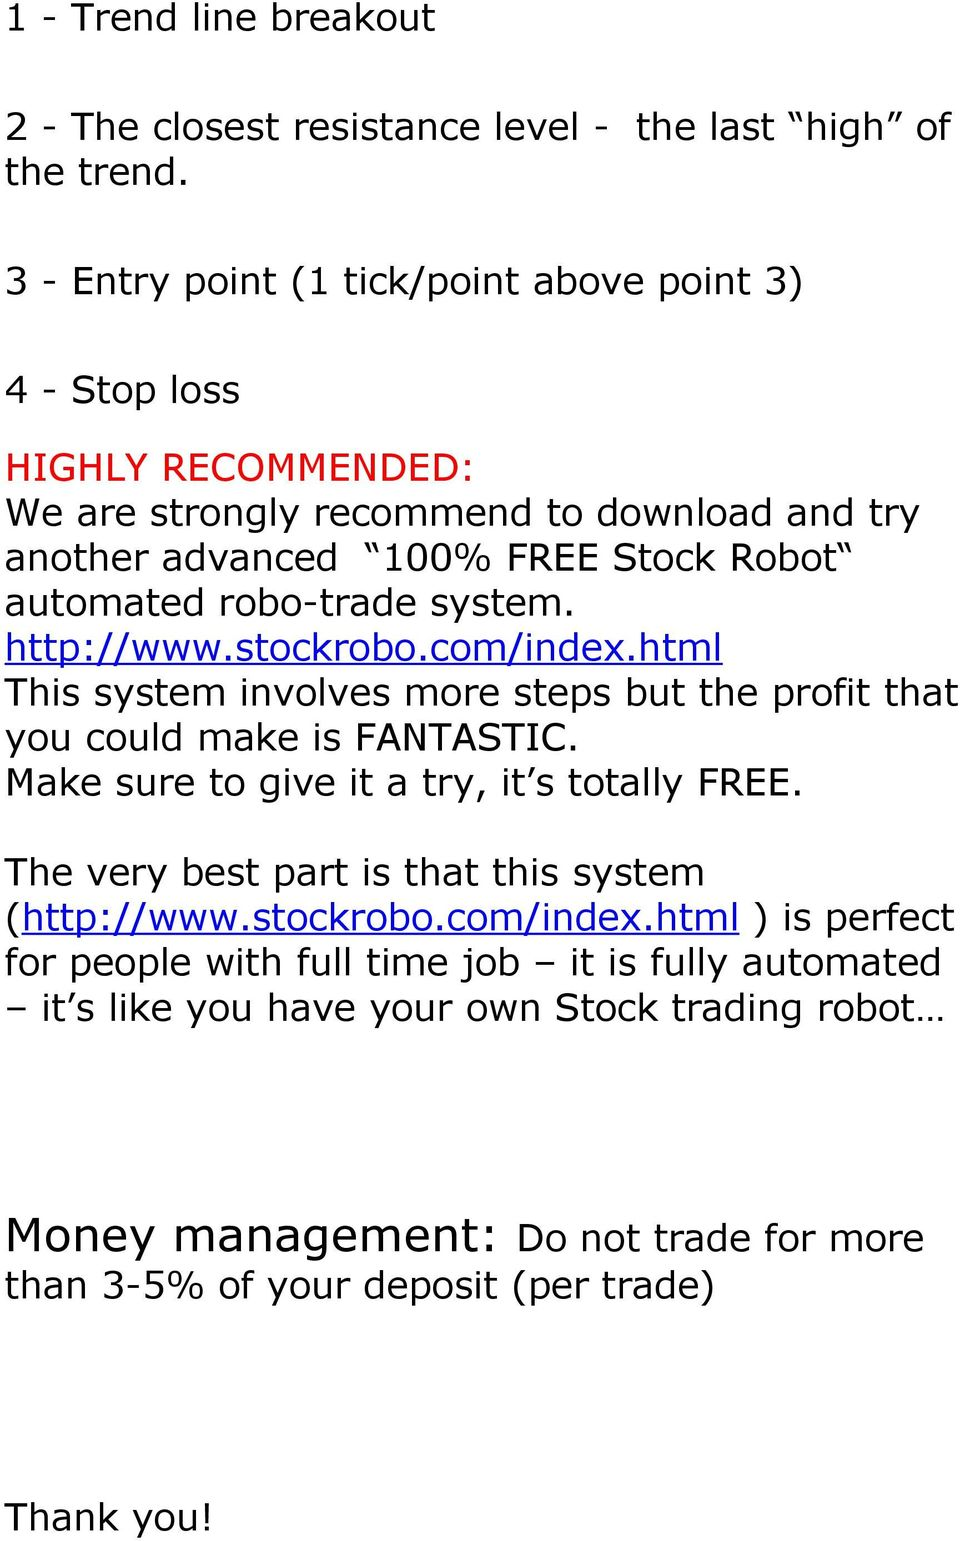 robo-trade system. http://www.stockrobo.com/index.html This system involves more steps but the profit that you could make is FANTASTIC.